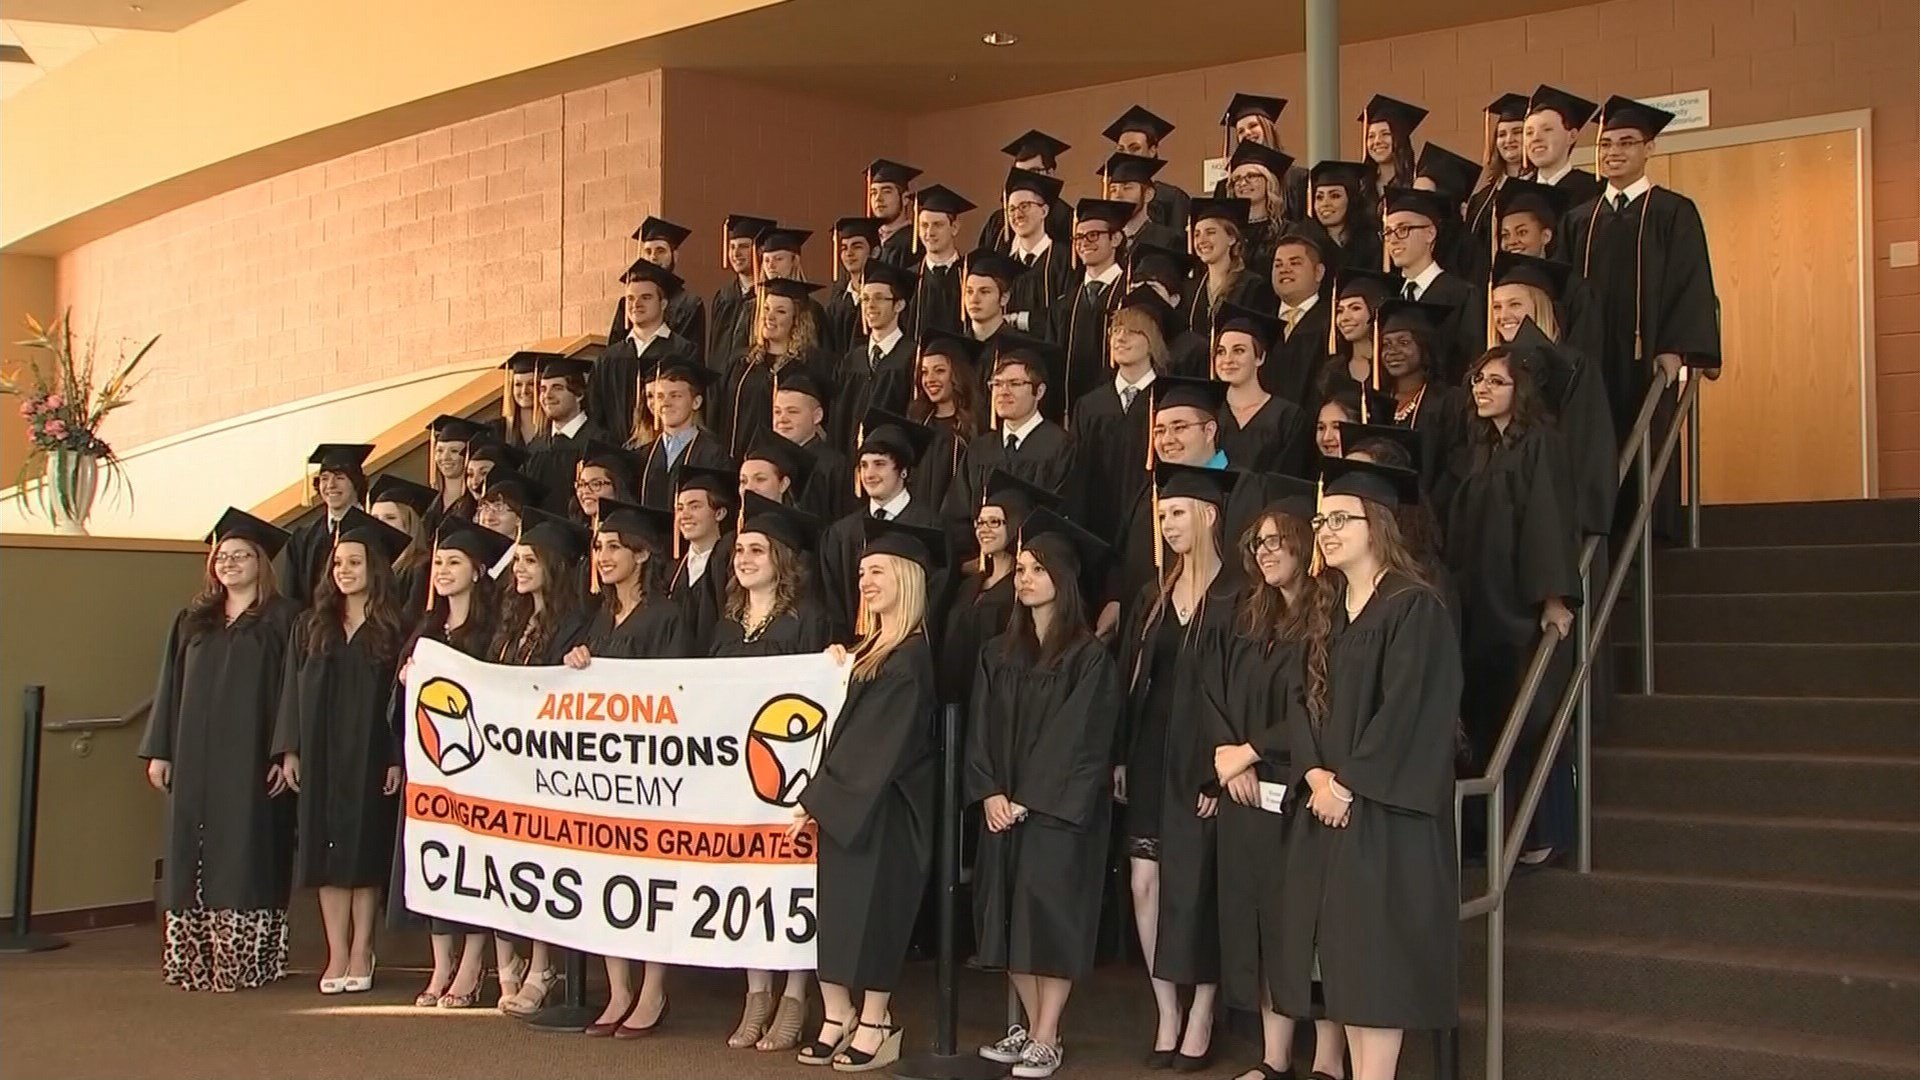 Arizona Connections Academy class of 2015 (Source: KPHO/KTVK)